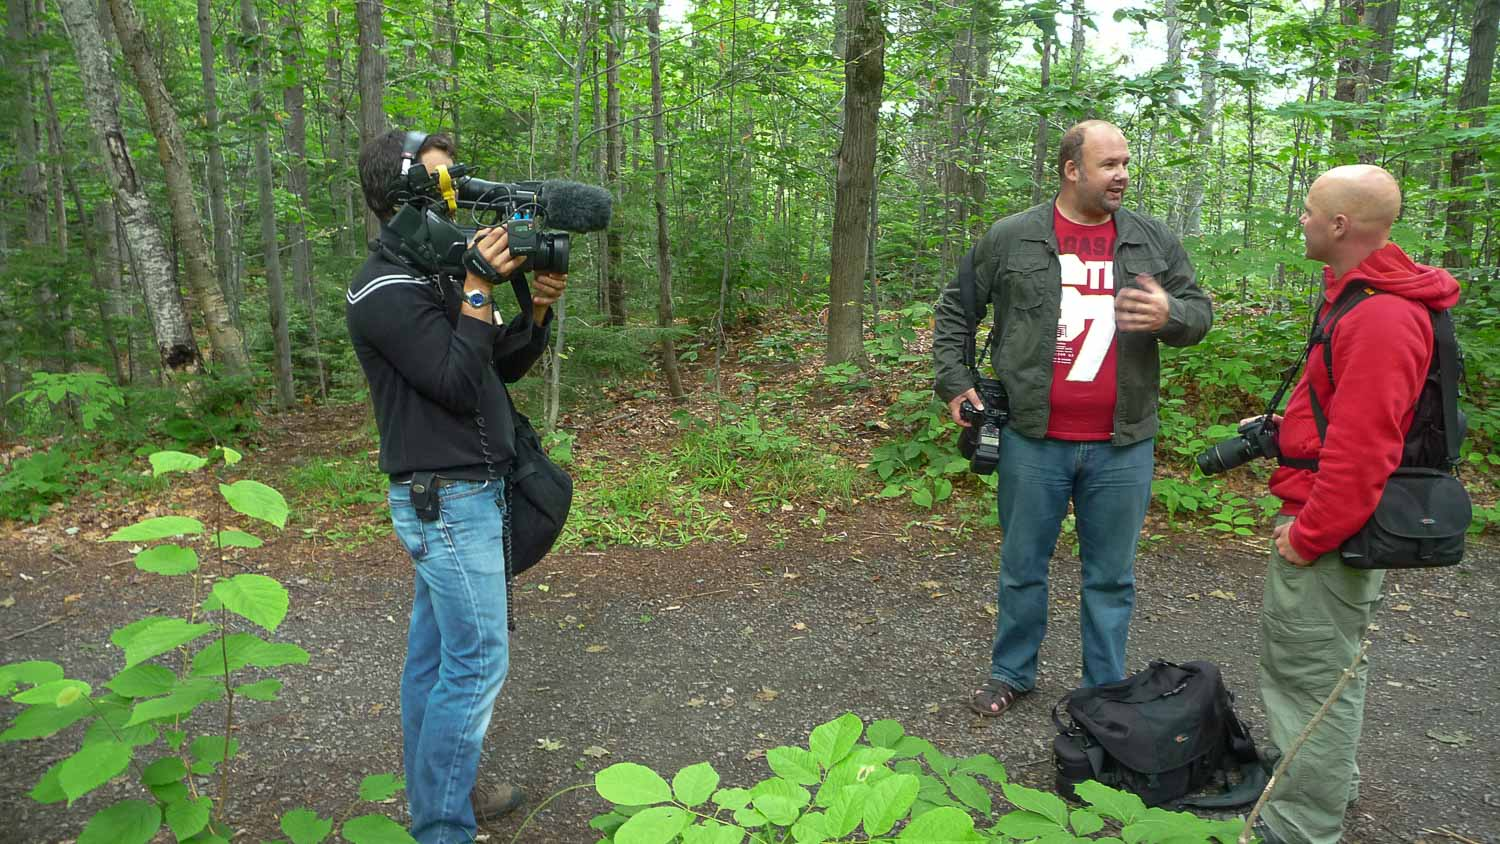 Forge Film production the great trails episode in the Mauricie region in Quebec